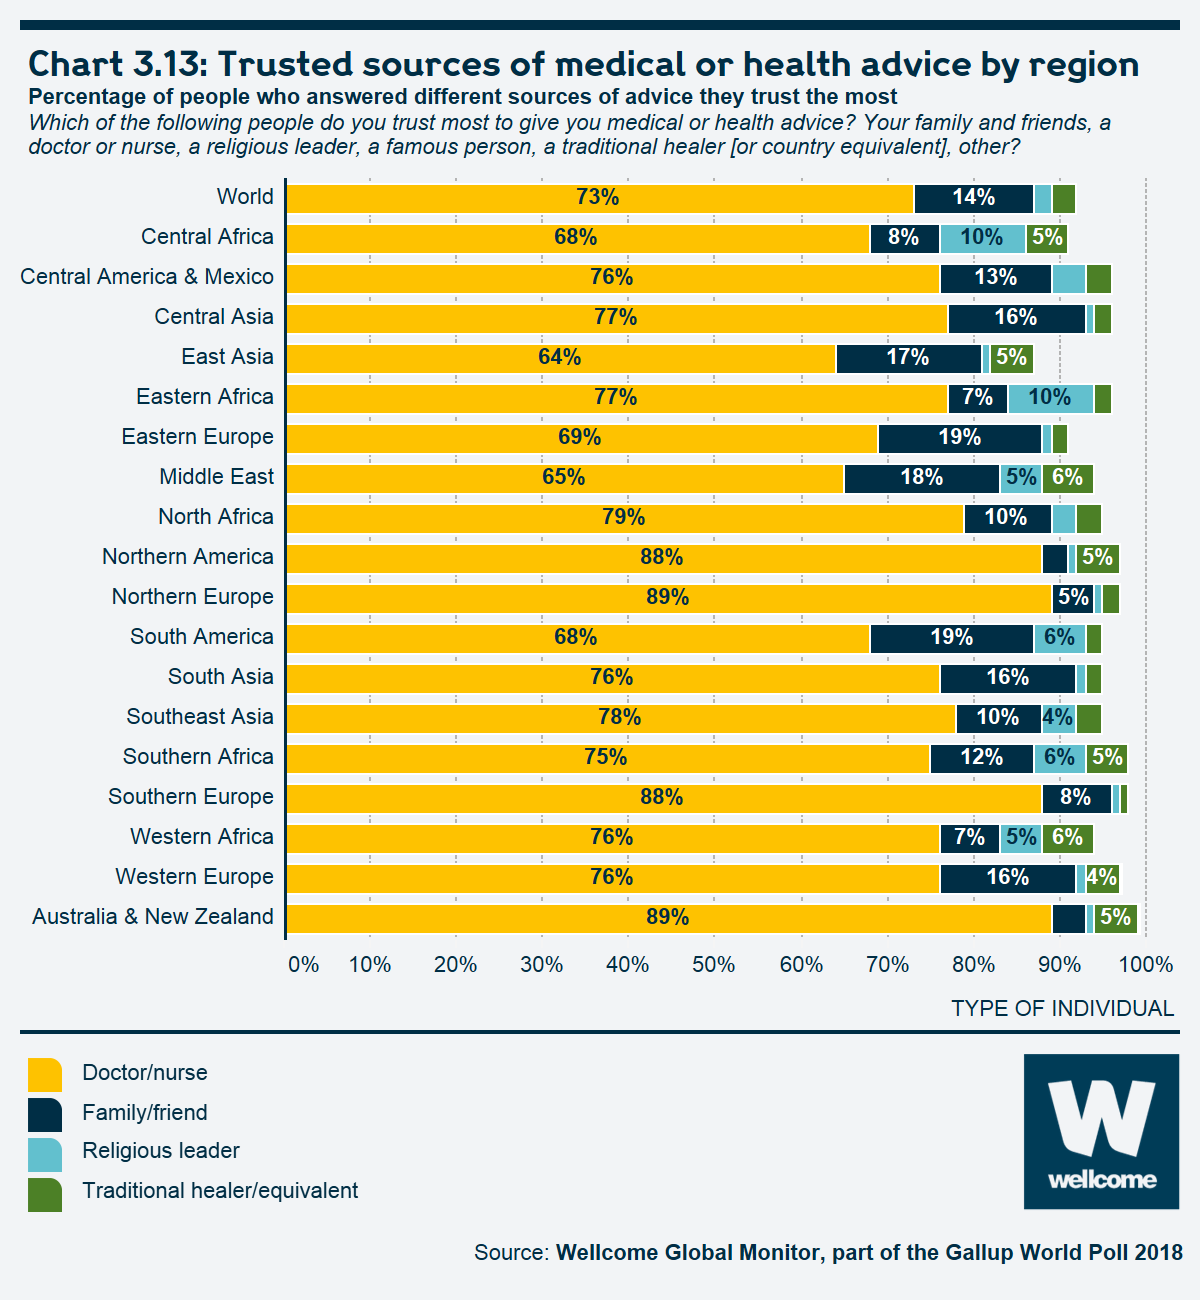 Chart 3.13 Trusted sources of medical or health advice by region